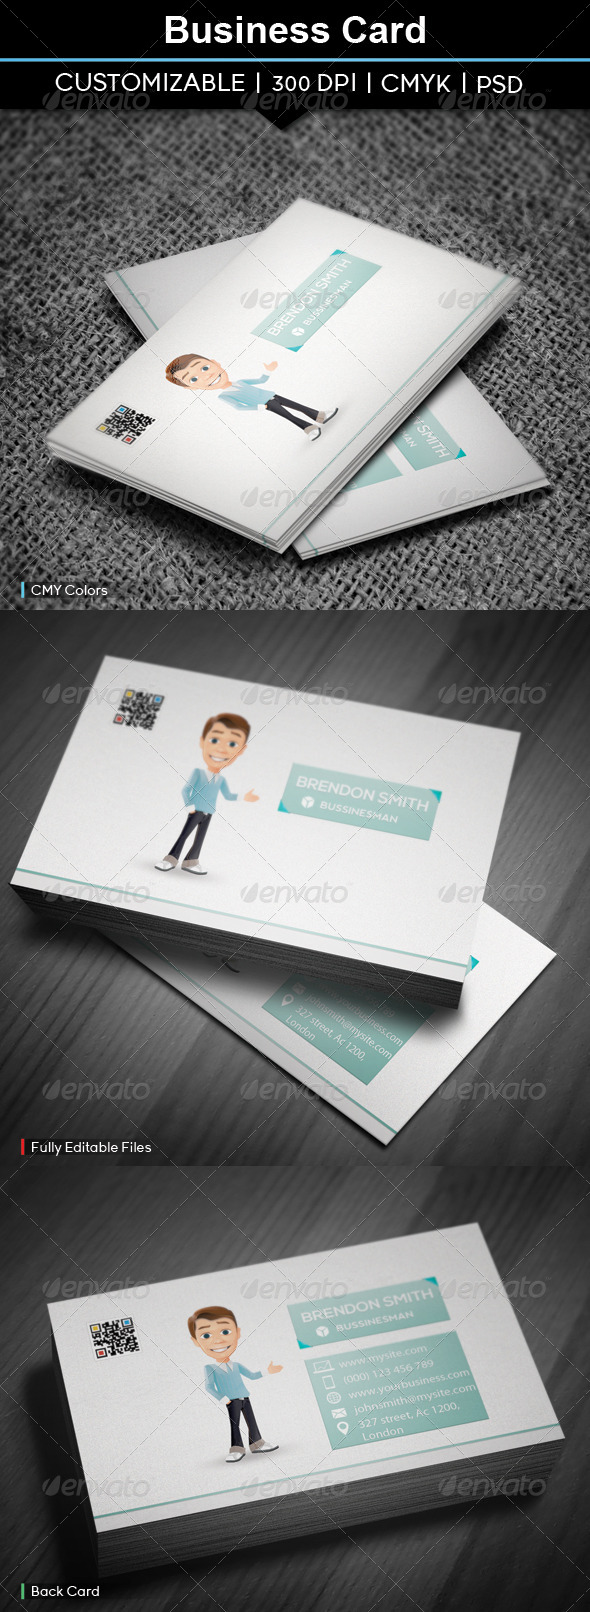 GraphicRiver Business Card 6 5295315